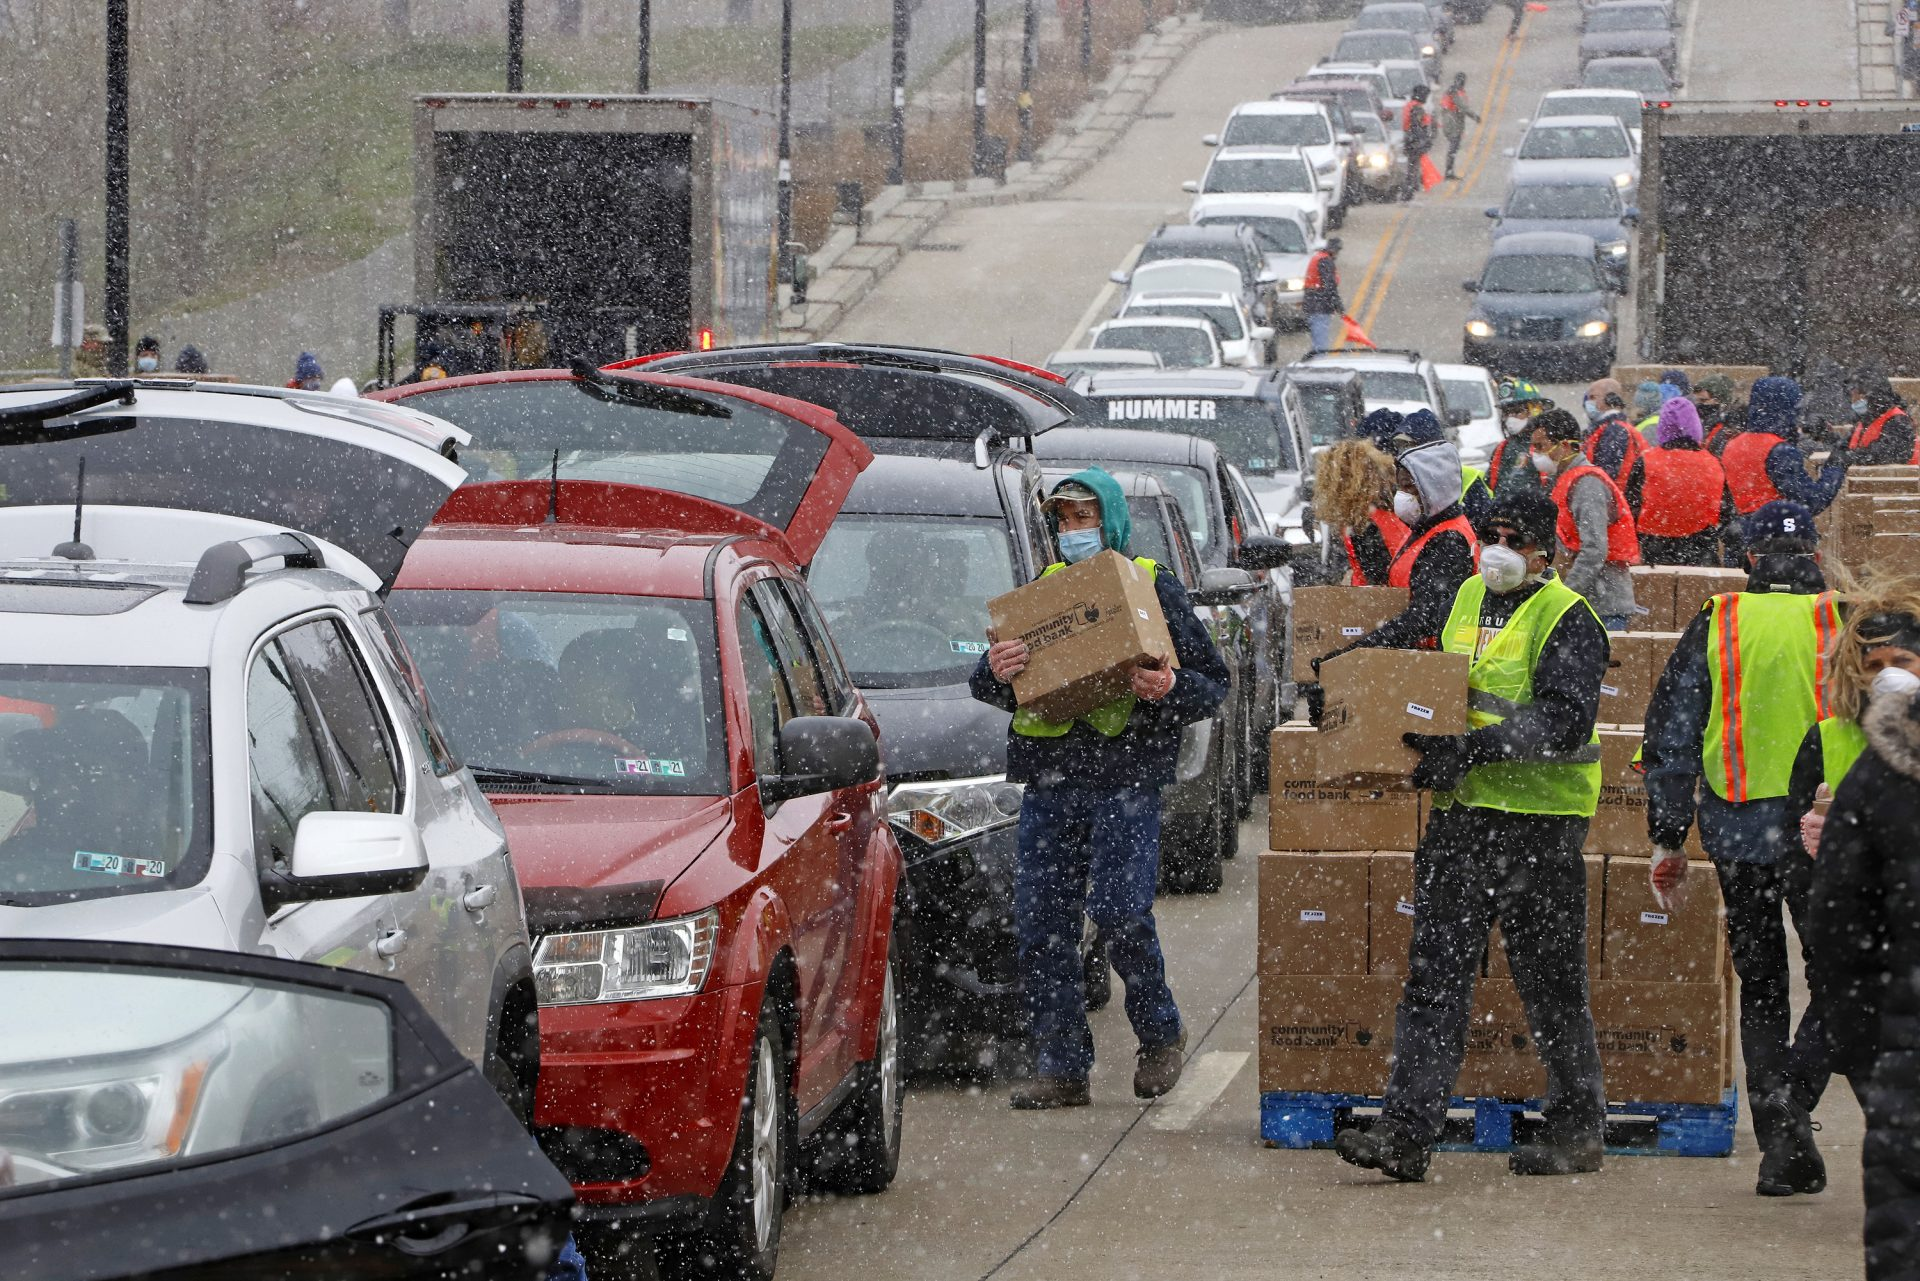 FILE PHOTO: Boxes of food are distributed by the Greater Pittsburgh Community Food Bank, at a drive thru distribution near PPG Arena in downtown Pittsburgh, Friday, April 10, 2020.